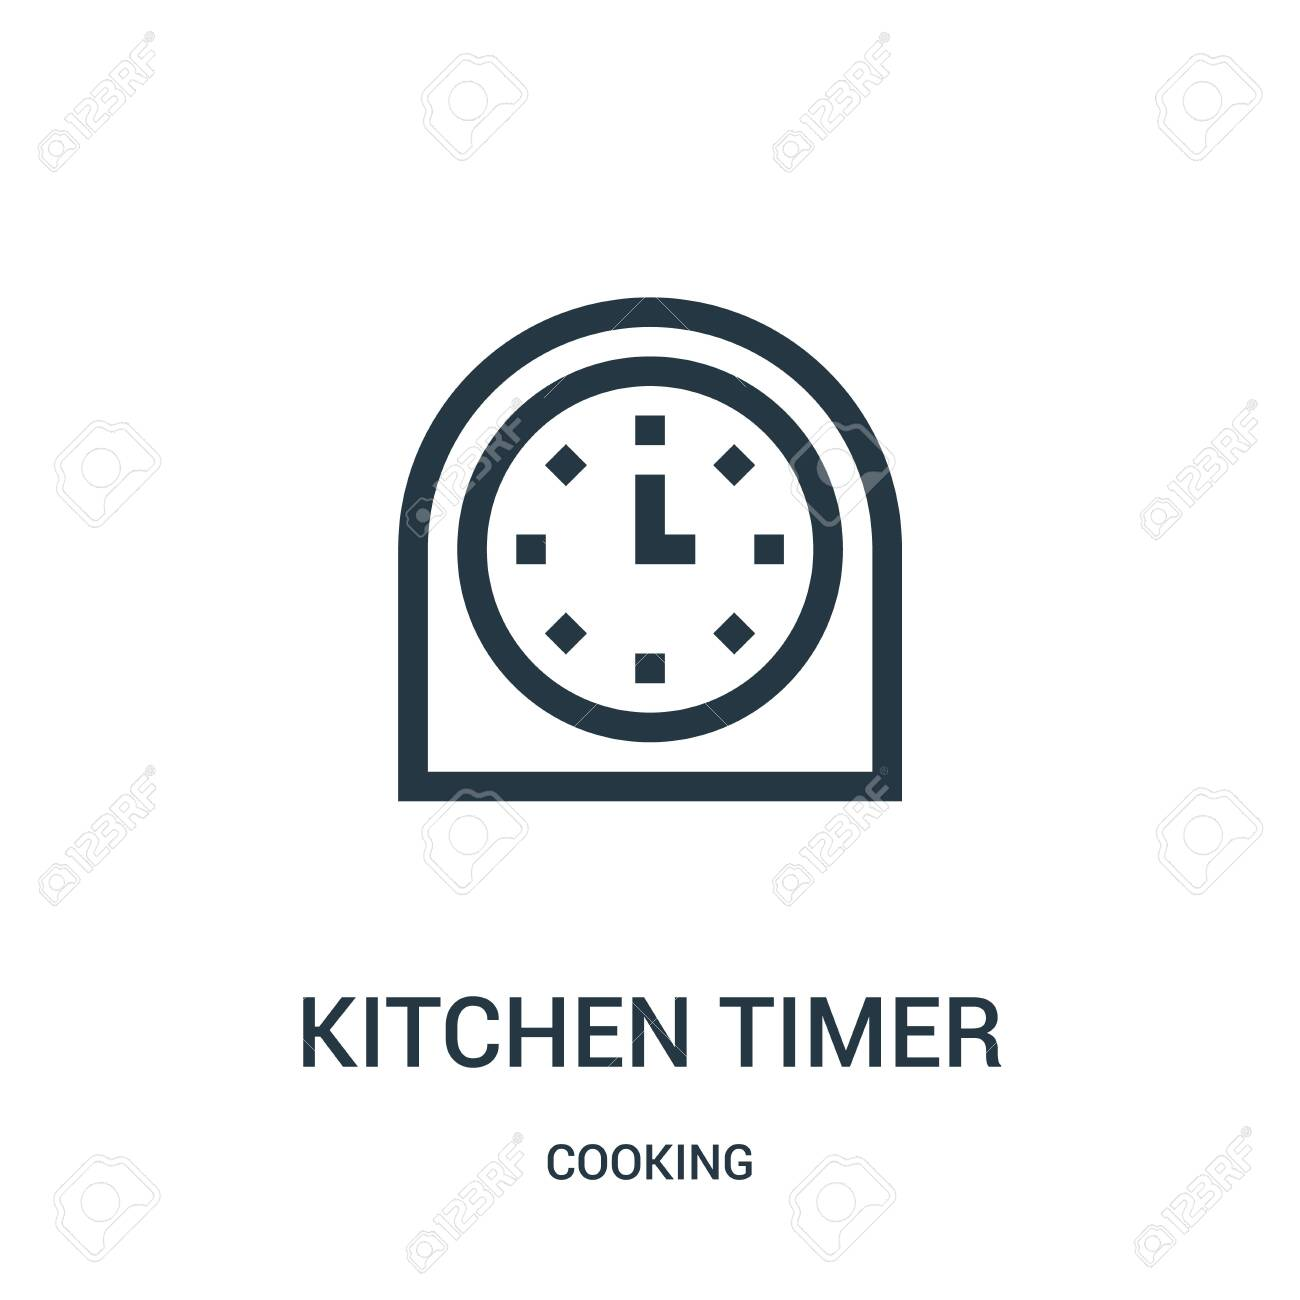 kitchen timer icon vector from cooking collection  Thin line